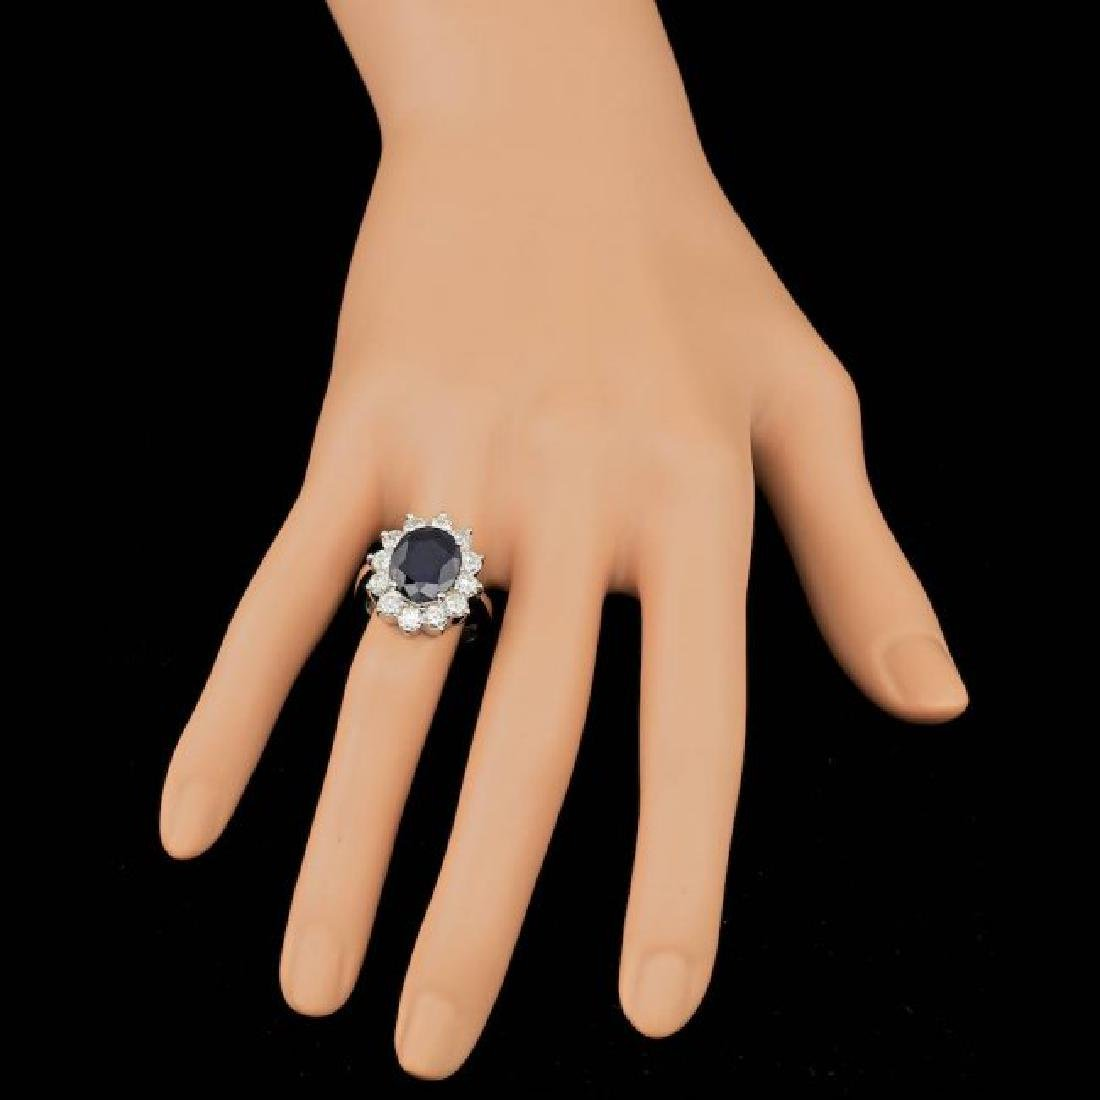 14k Gold 5.00ct Sapphire 2.50ct Diamond Ring - 3